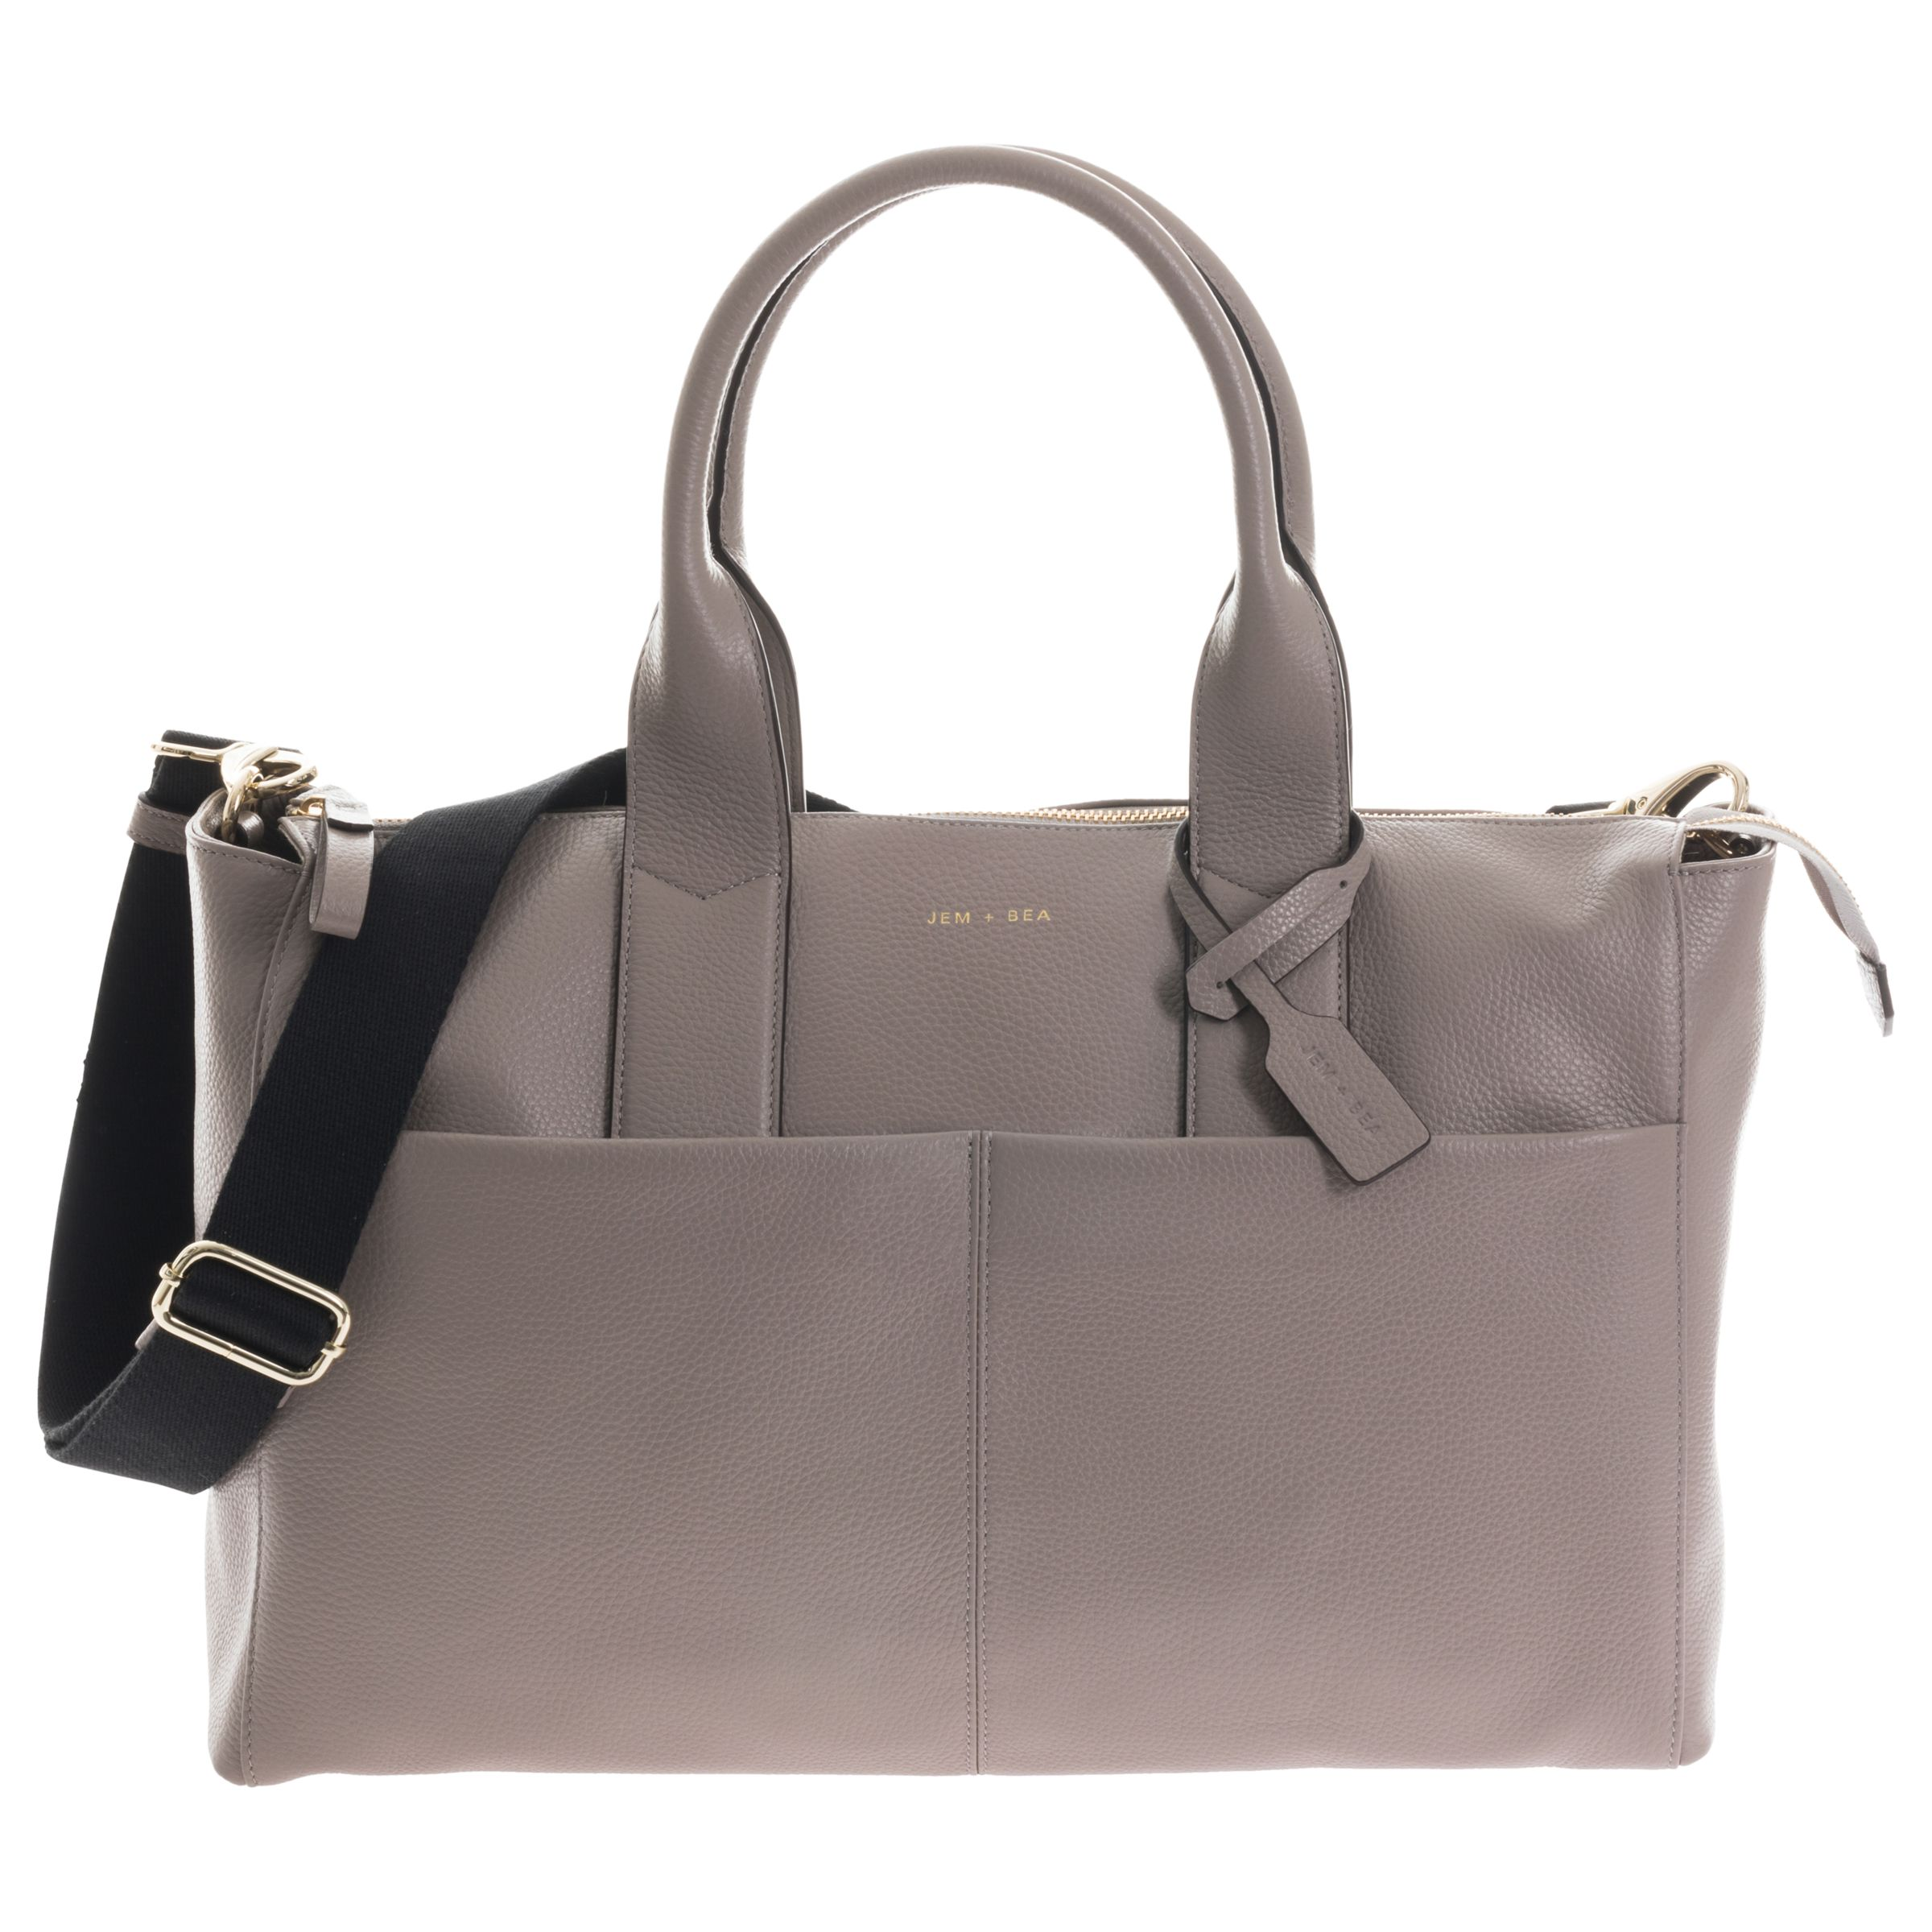 Jem + Bea JEM + BEA Jemima Tote Changing Bag, Grey